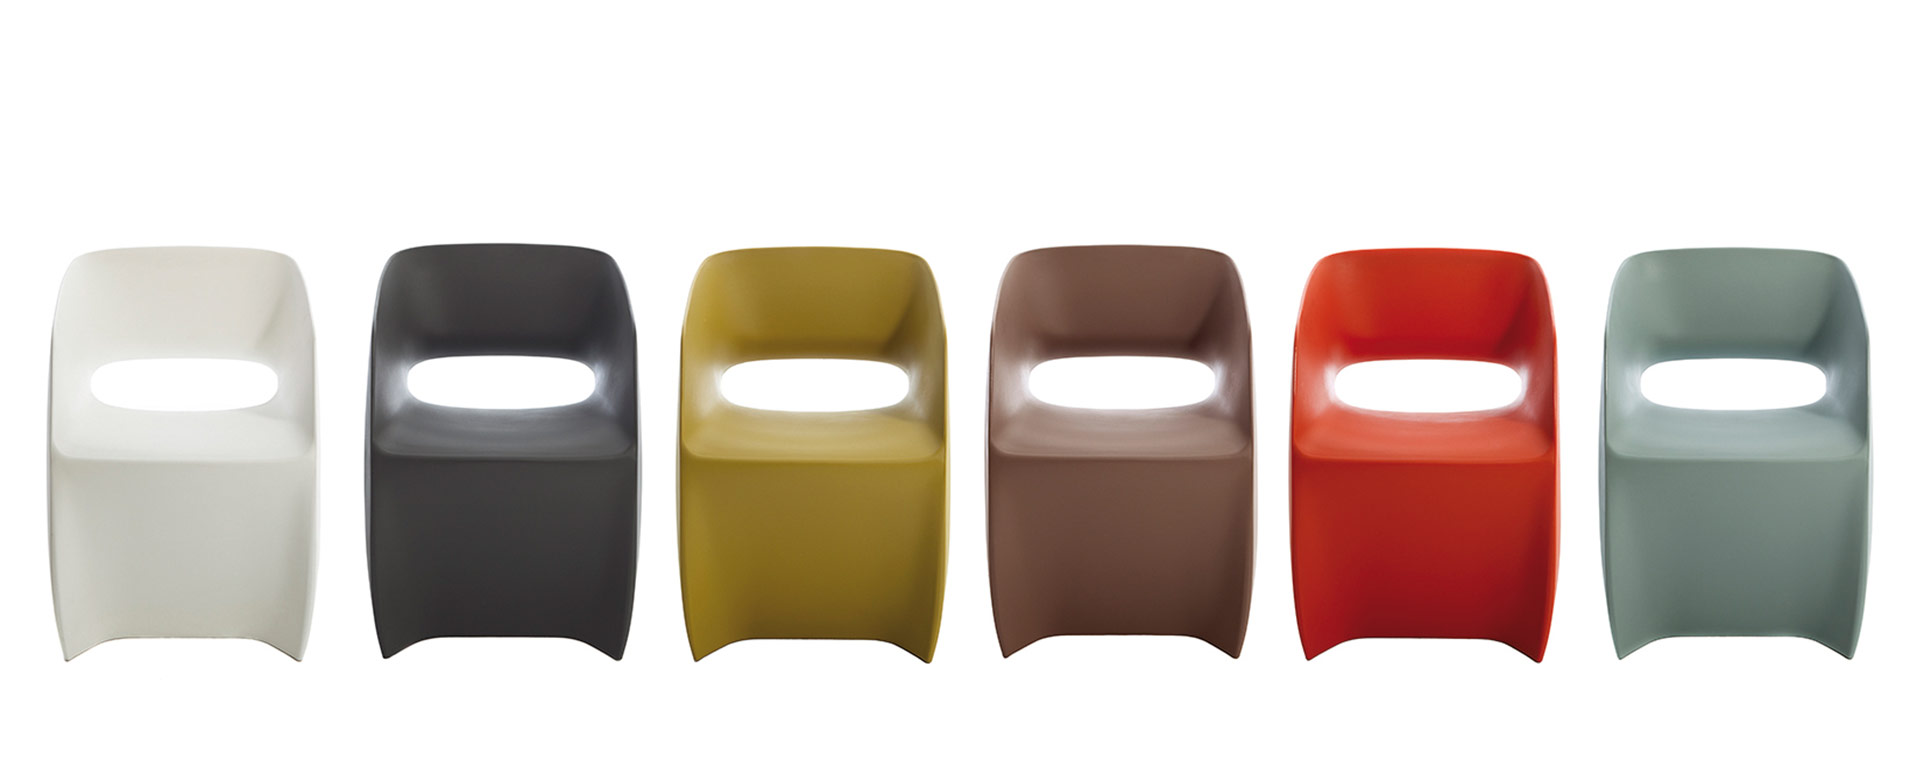 OM BASIC Outdoor Chairs